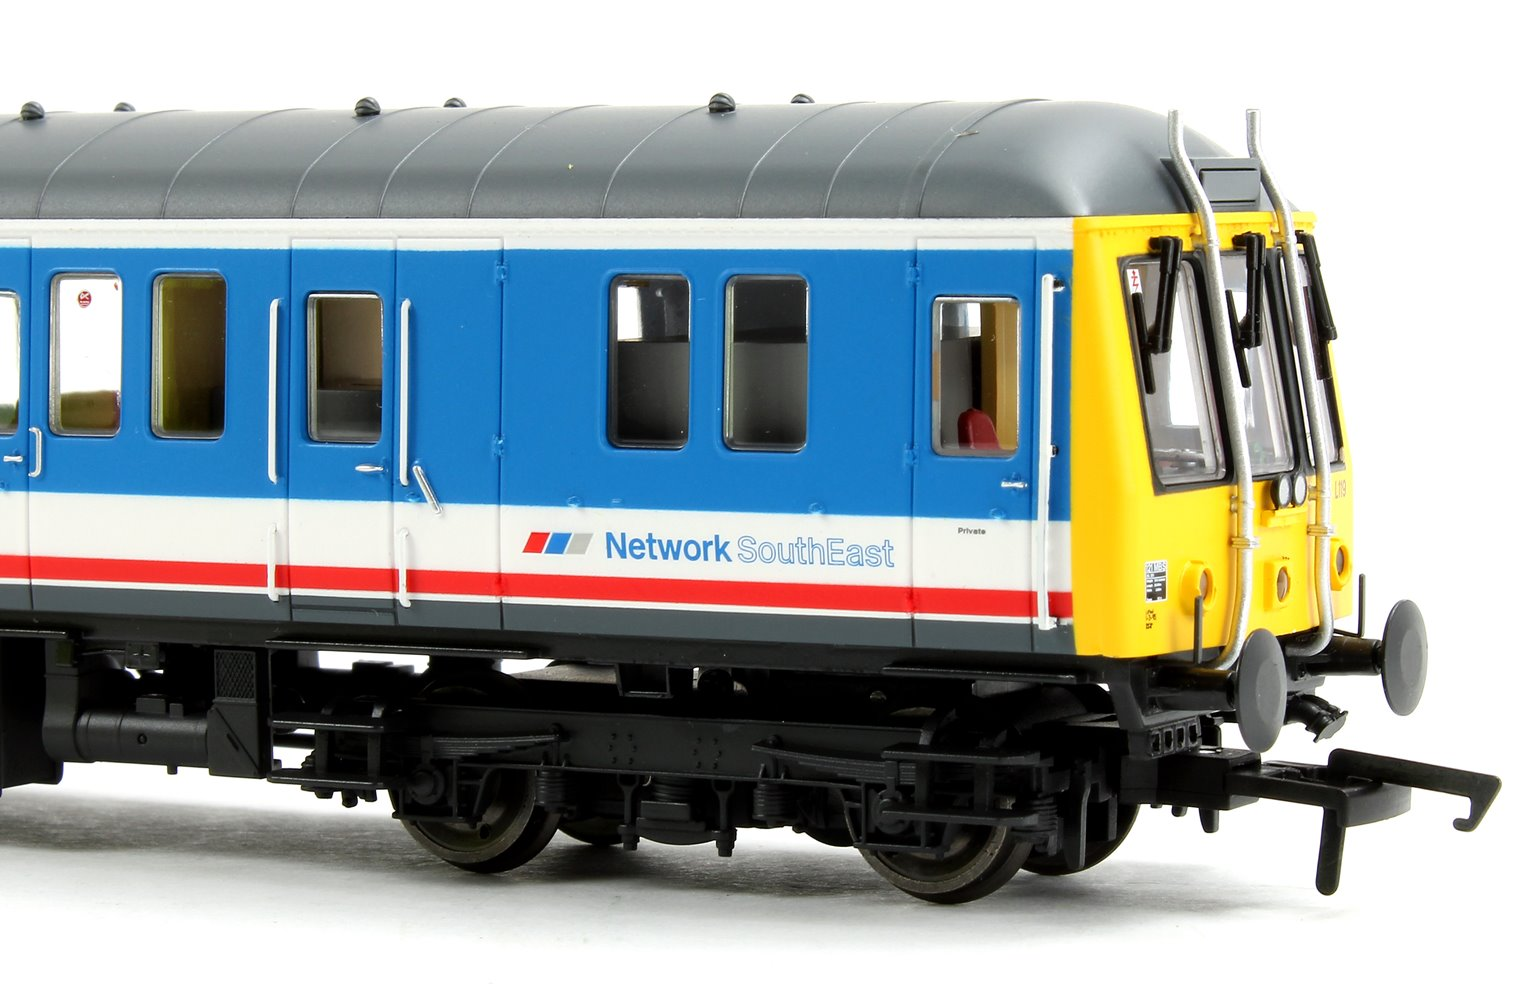 Class 122 975042 (55019) Network South East NSE (Rt Learn)